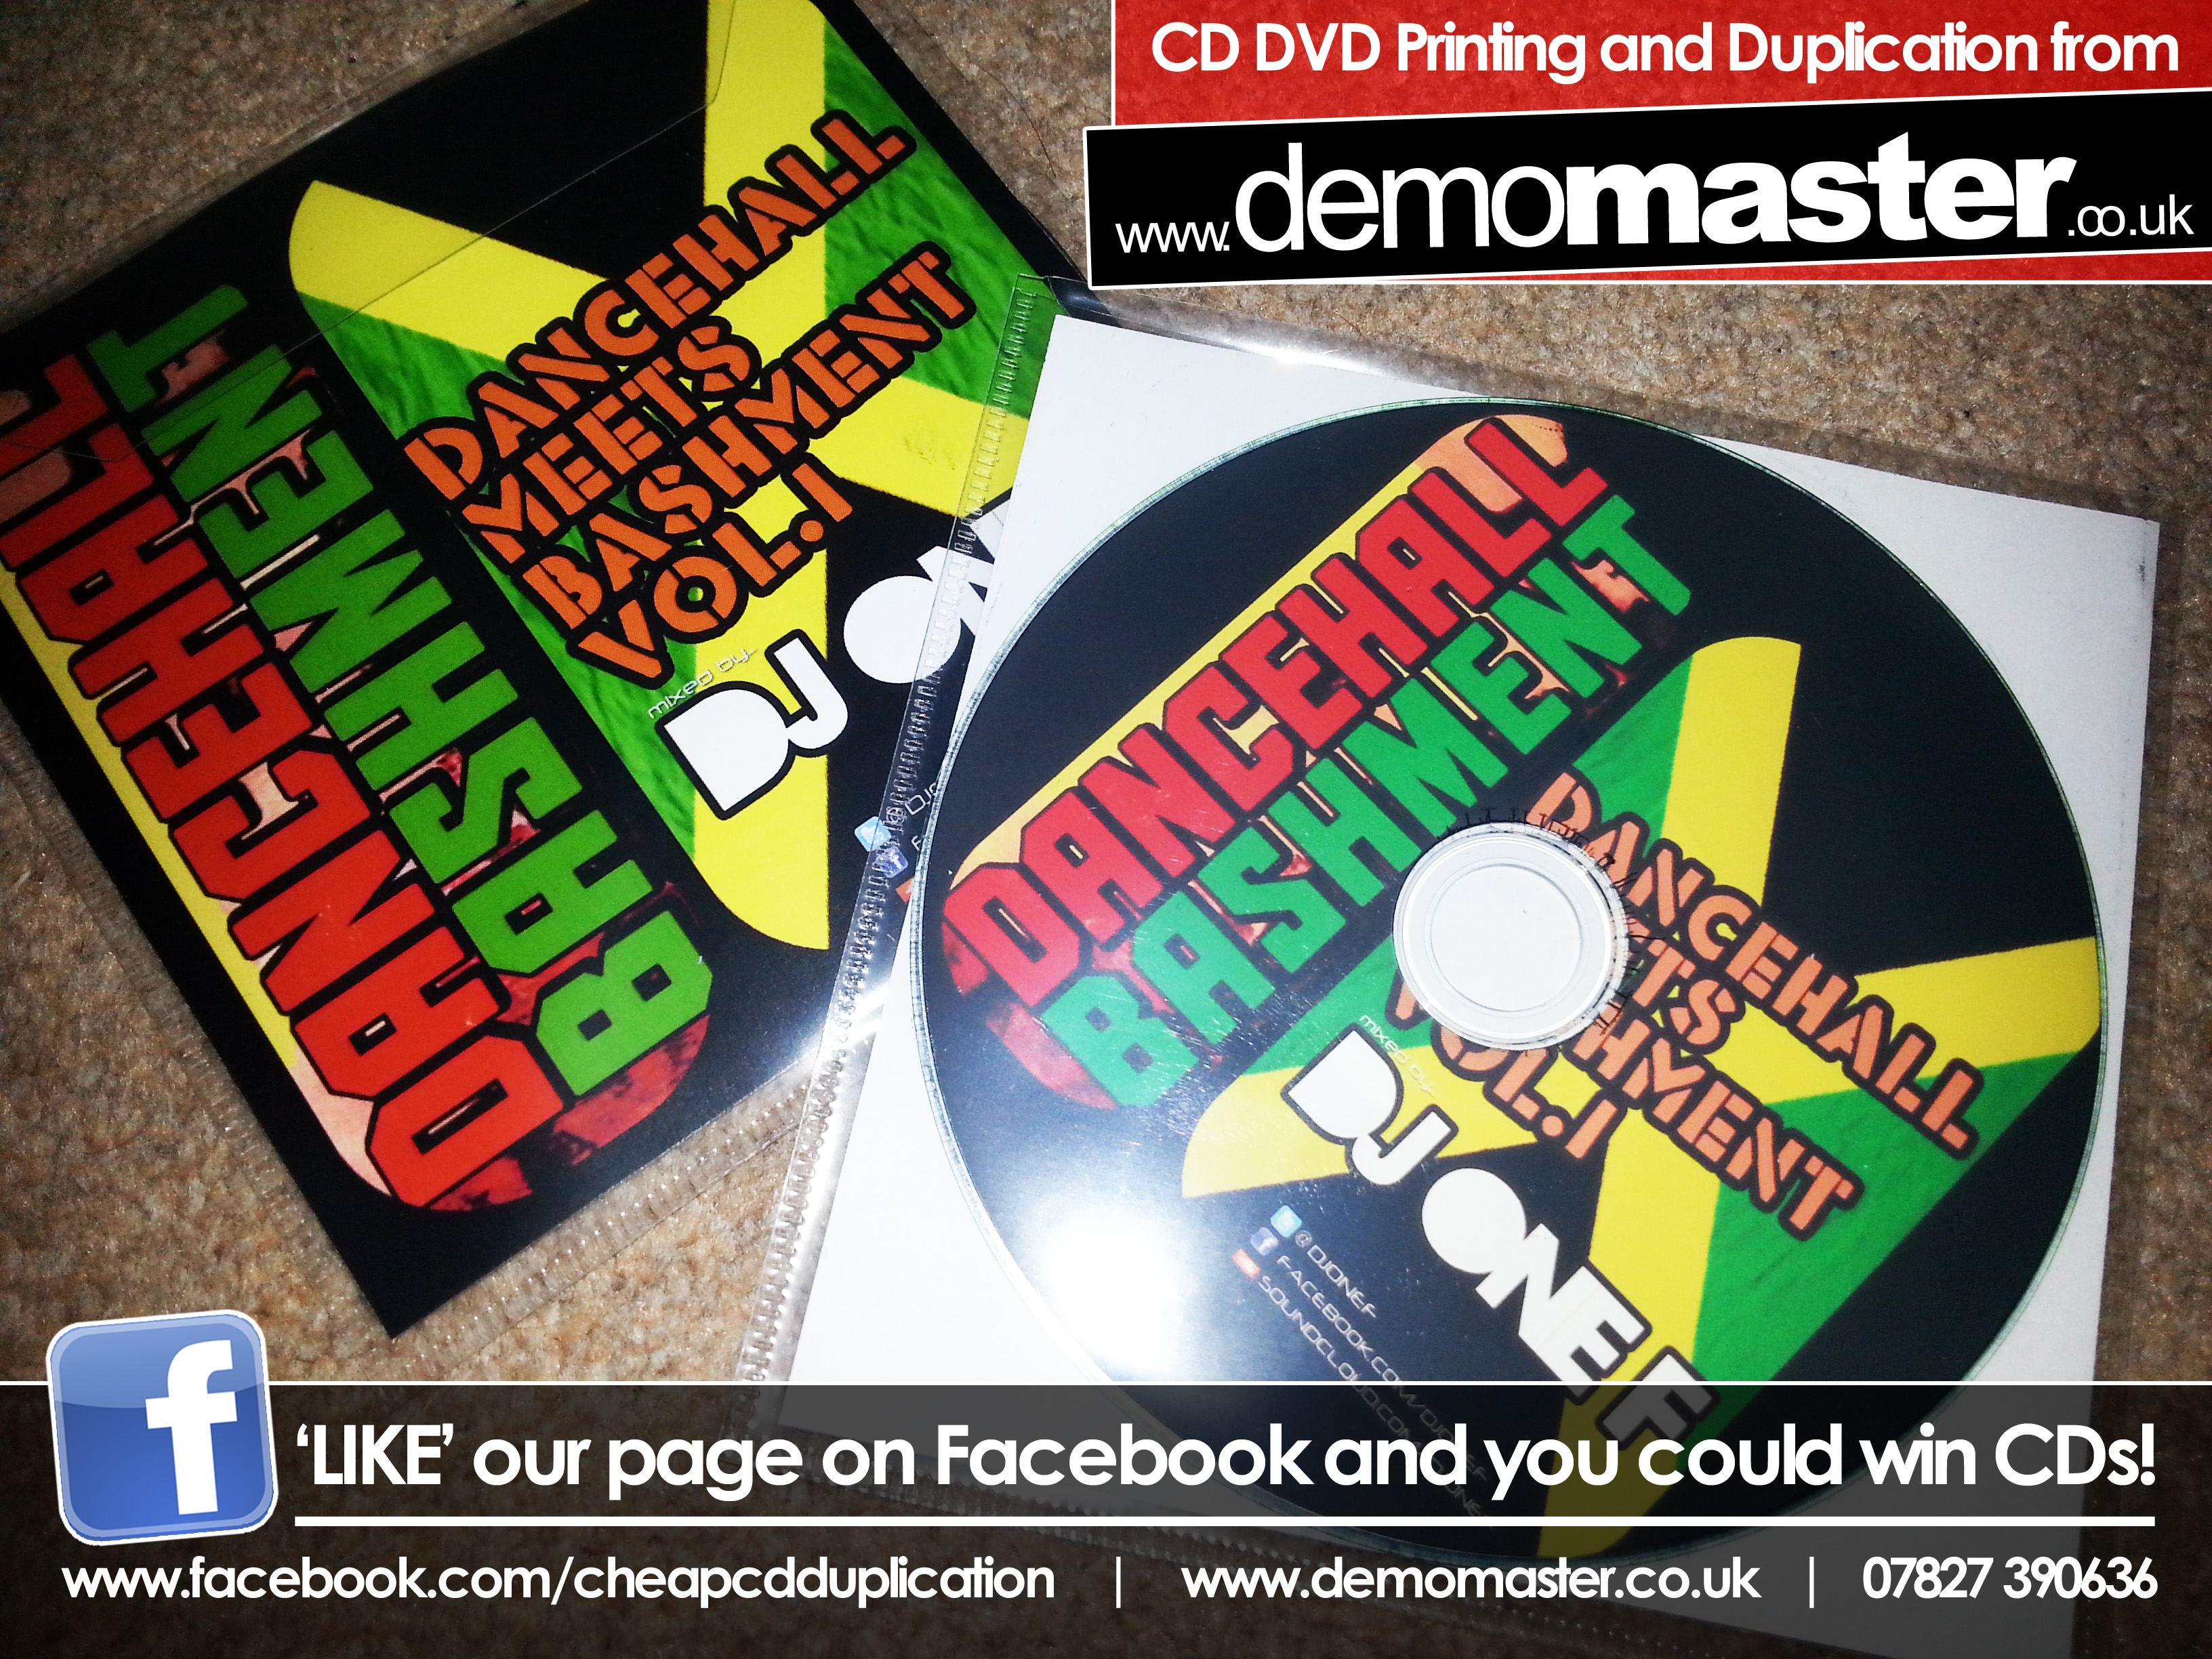 Dancehall meets Bashment Vol 1 mixed by DJ One F - Demomaster CD